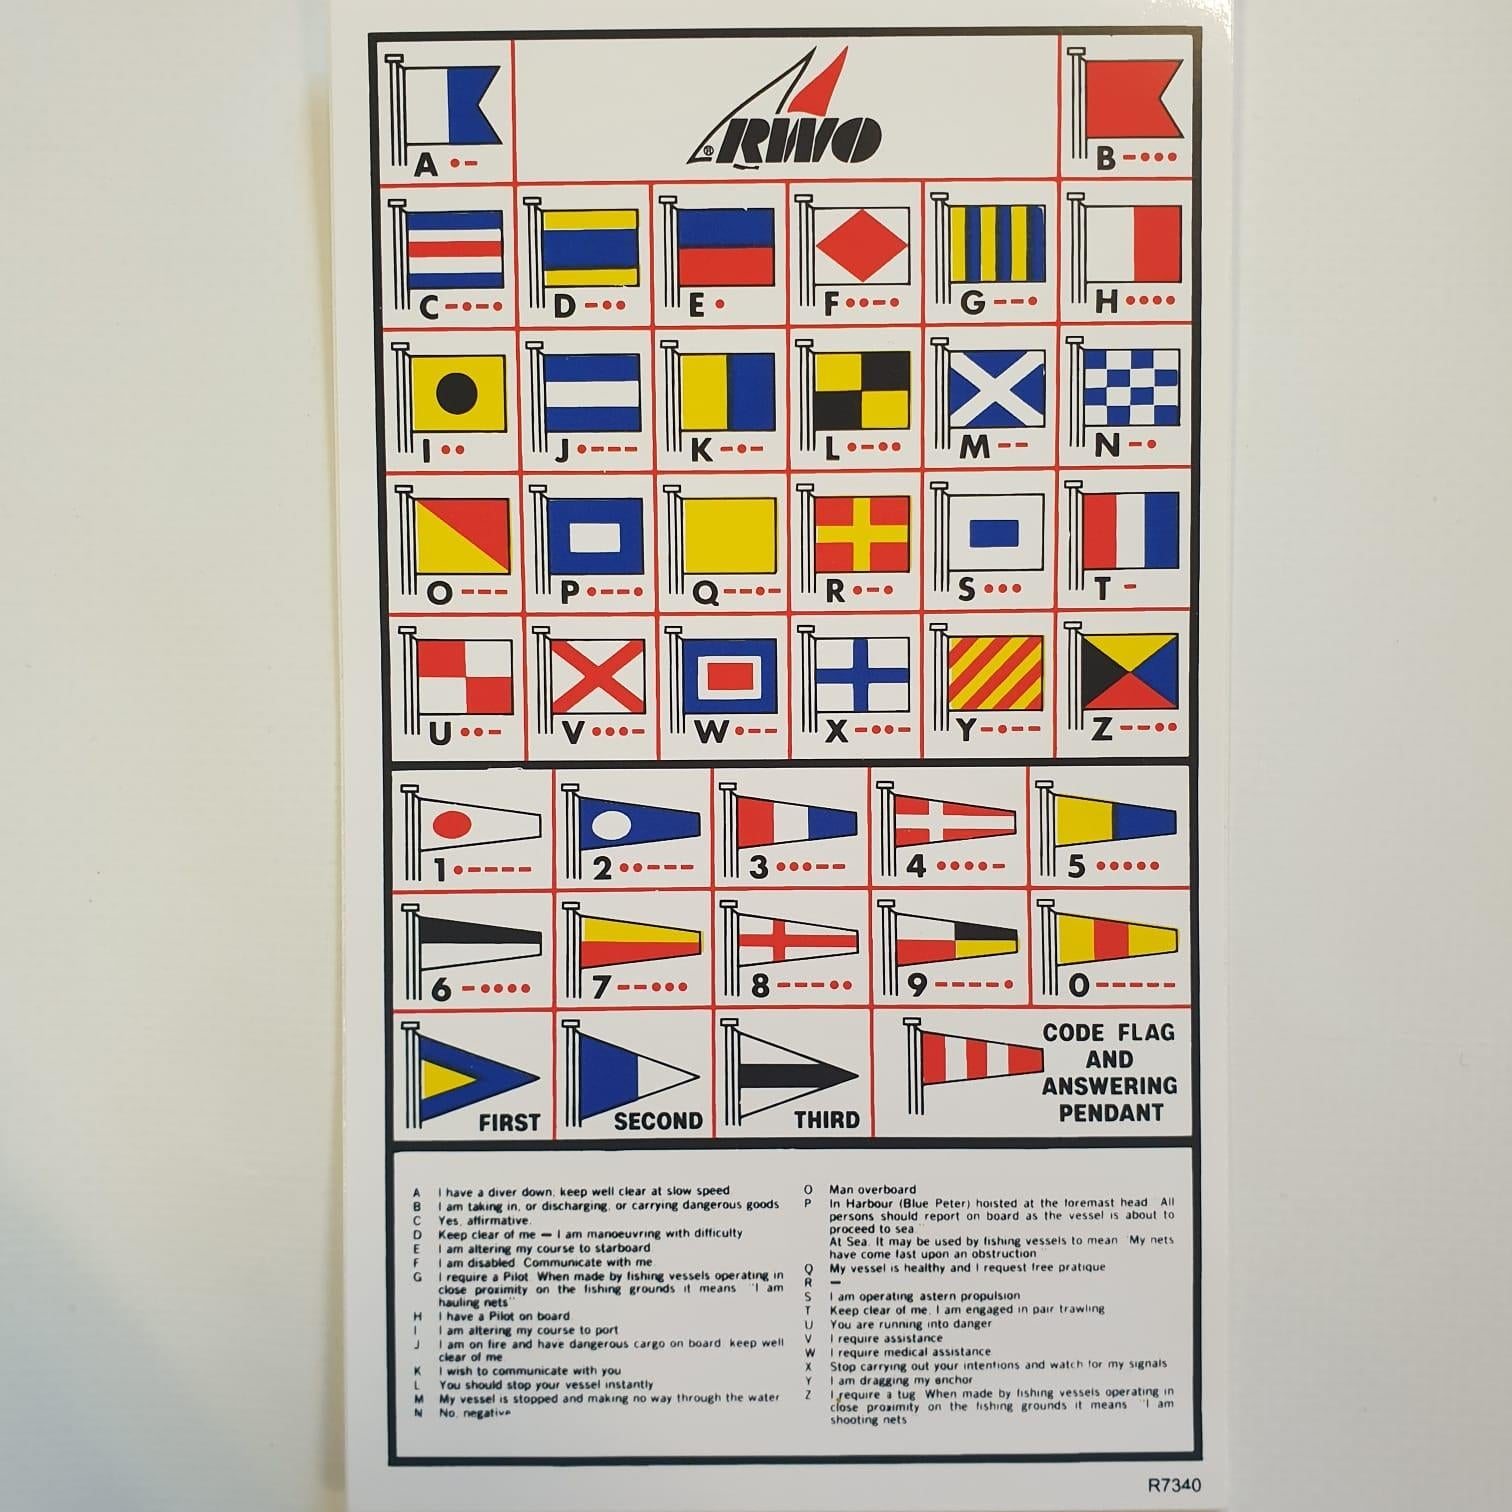 RWO Flag Sticker with Code Flags